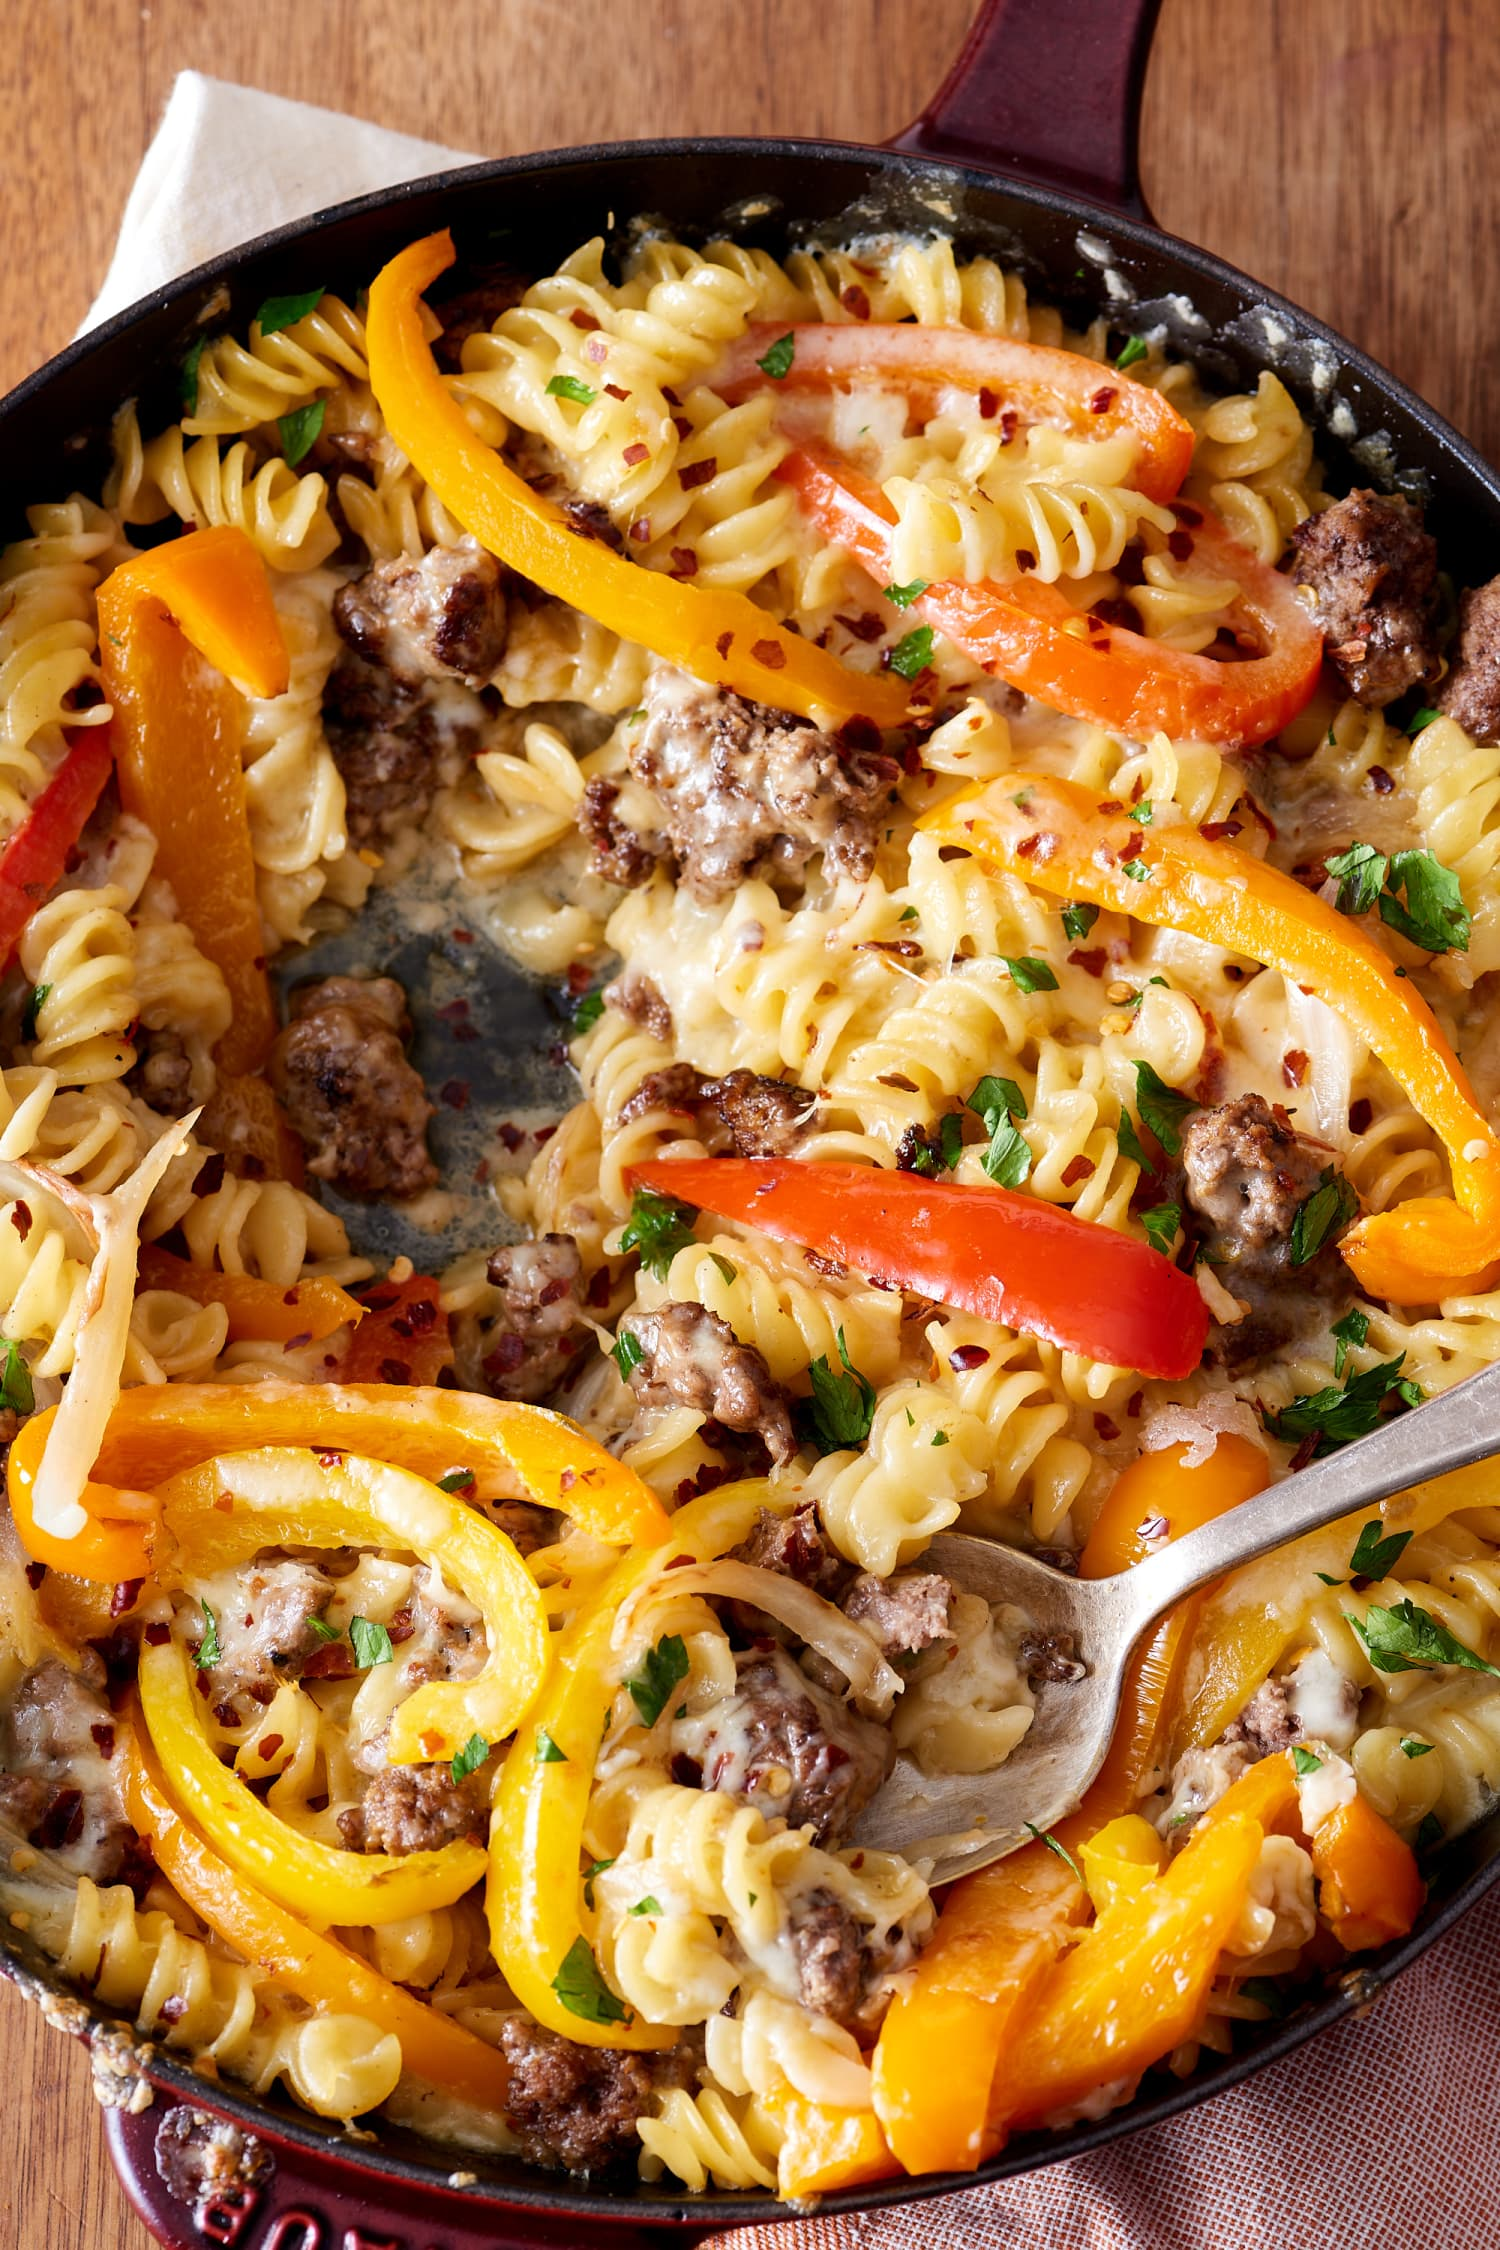 12 One-Skillet Dinners I Make for My Family All the Time